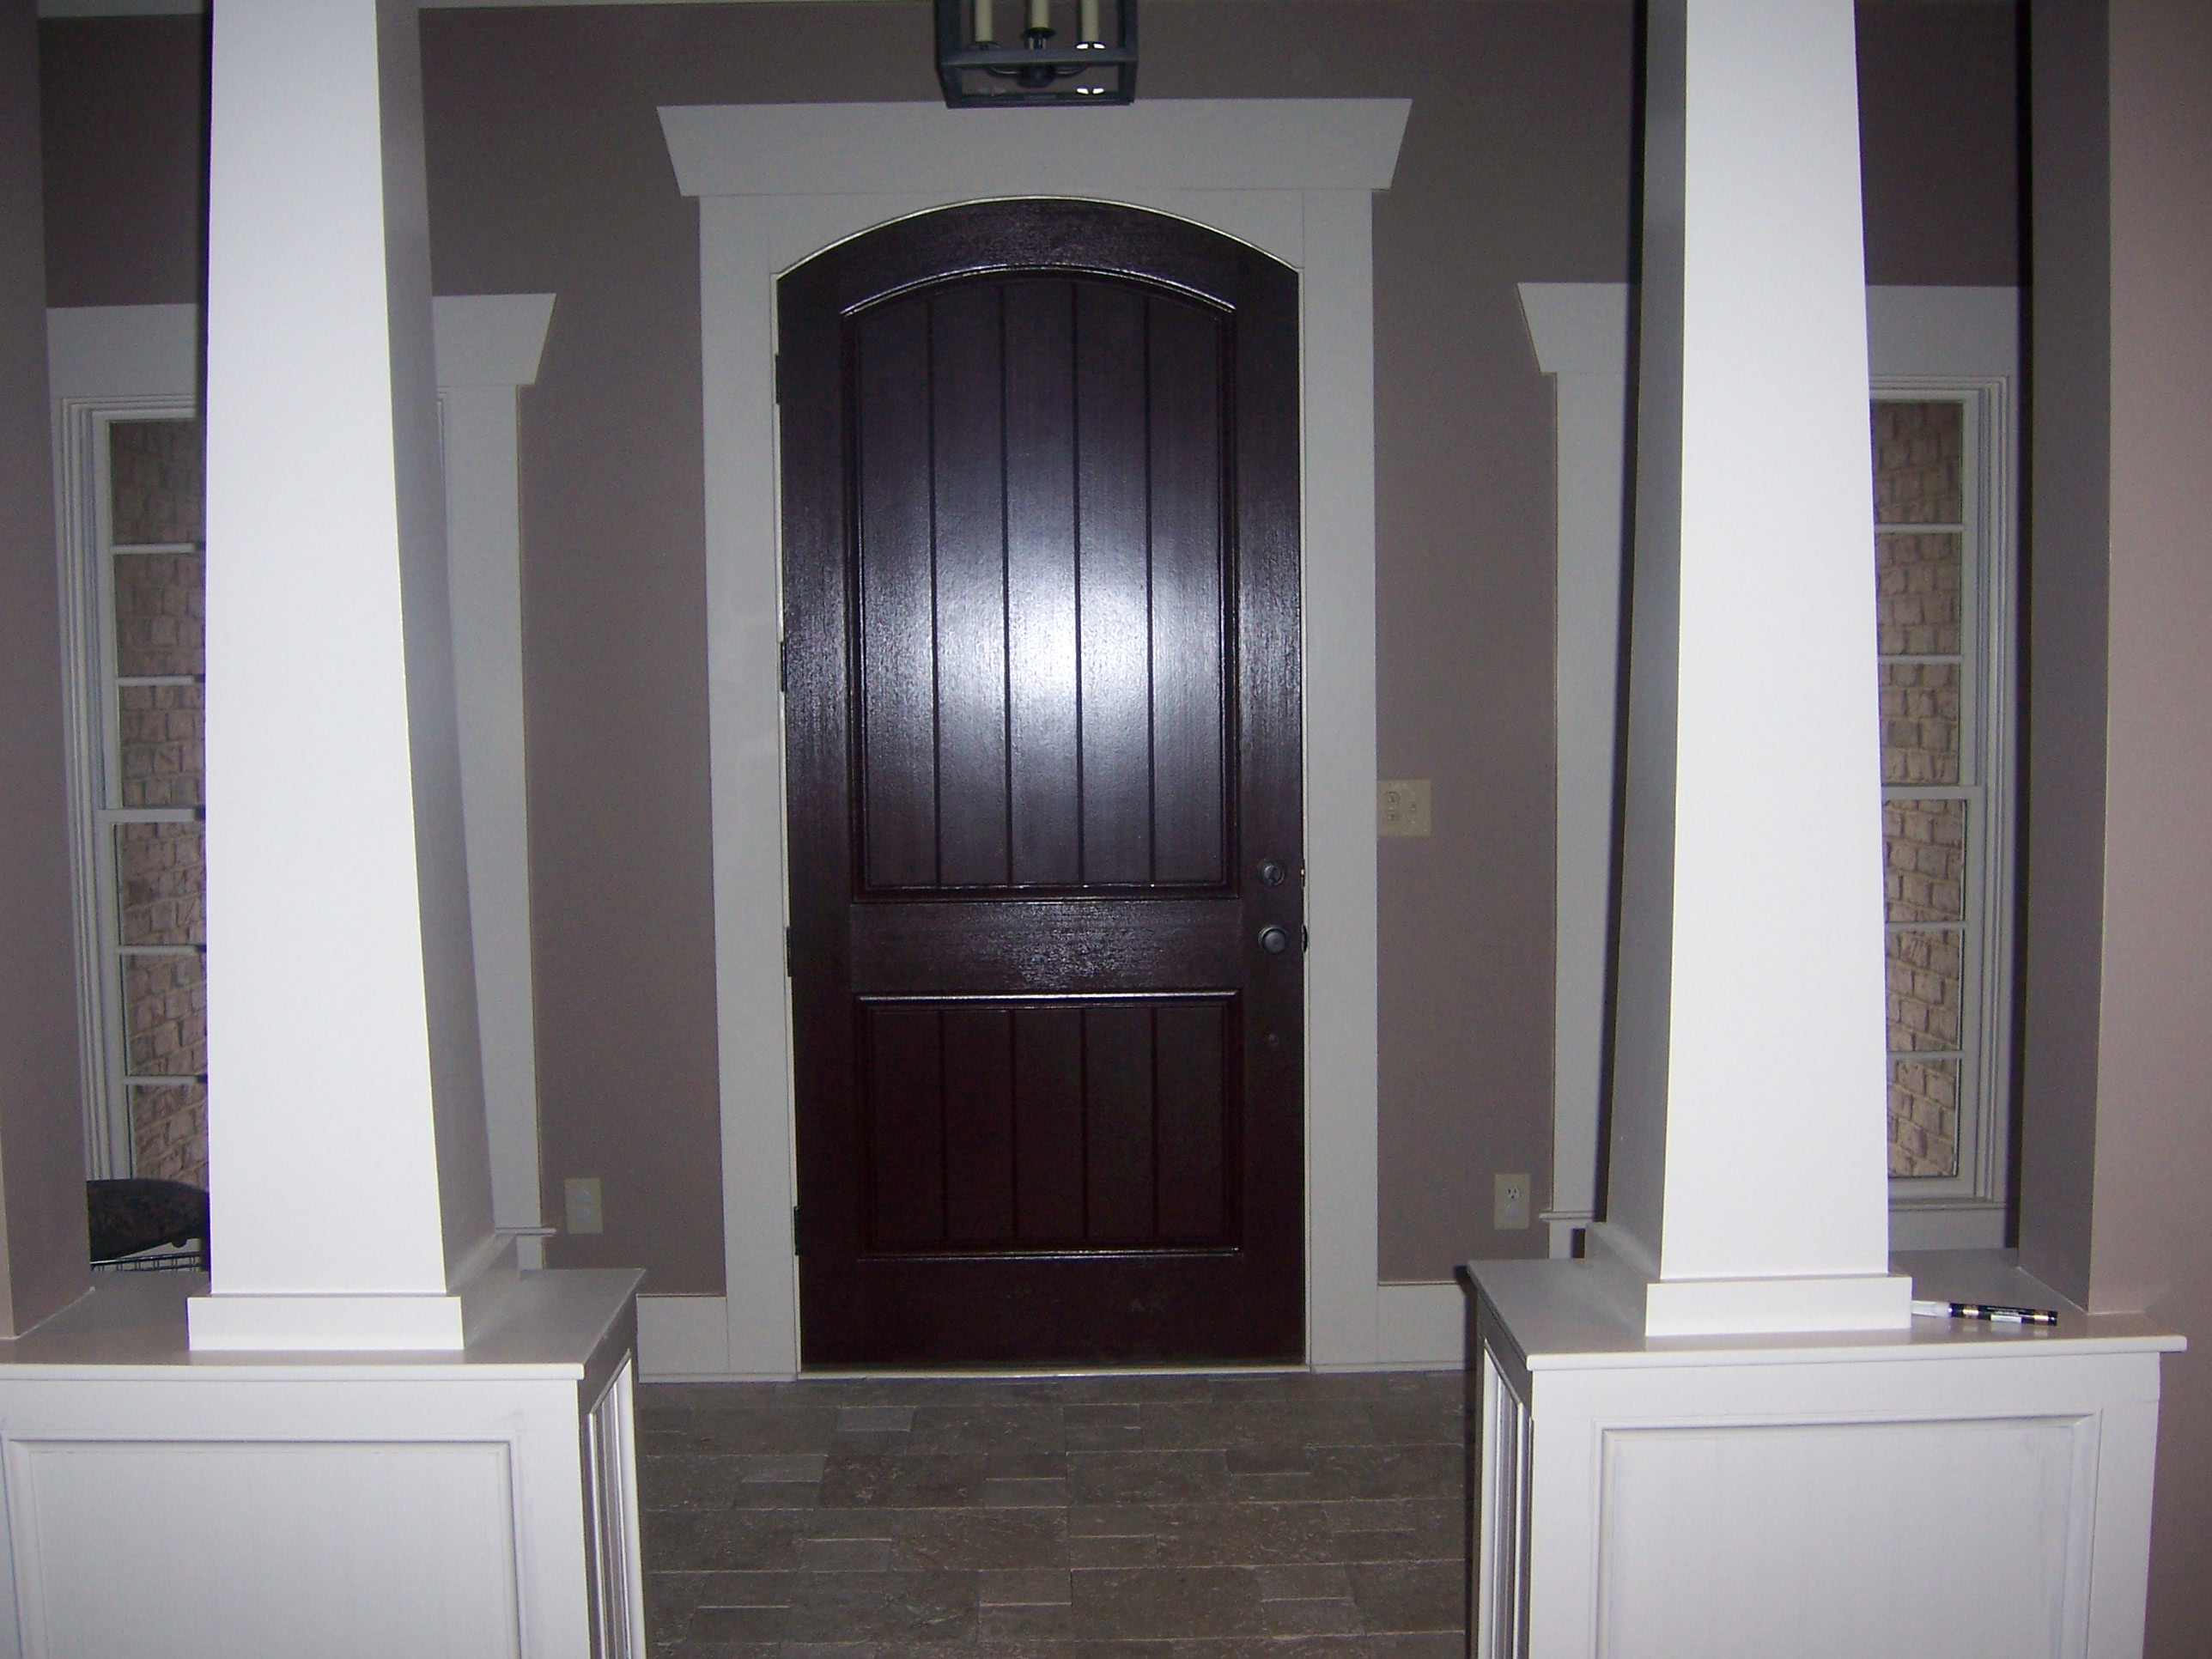 pin wood be can or used our interior purposes their decor load decorative columns structural purely for